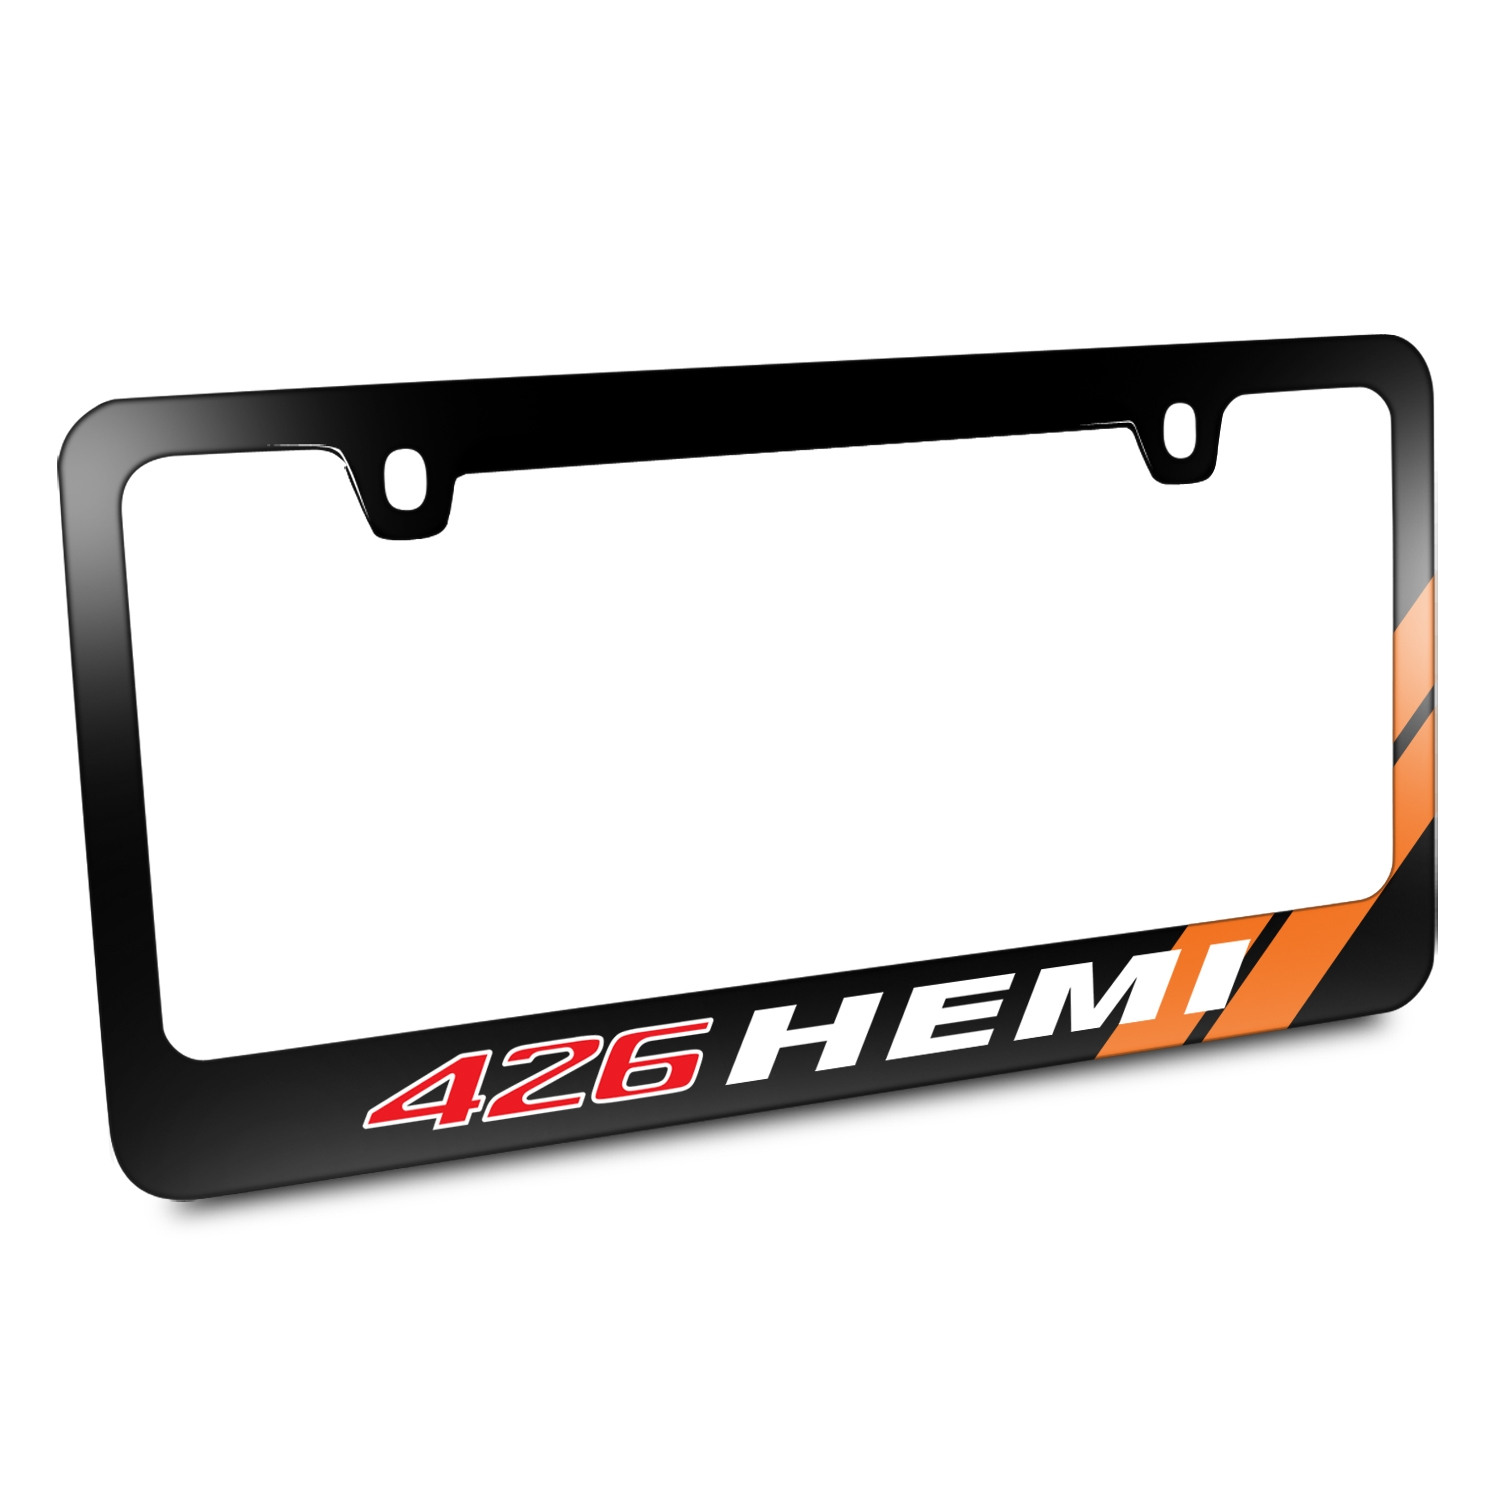 426 HEMI Orange Stripe Black Metal License Plate Frame